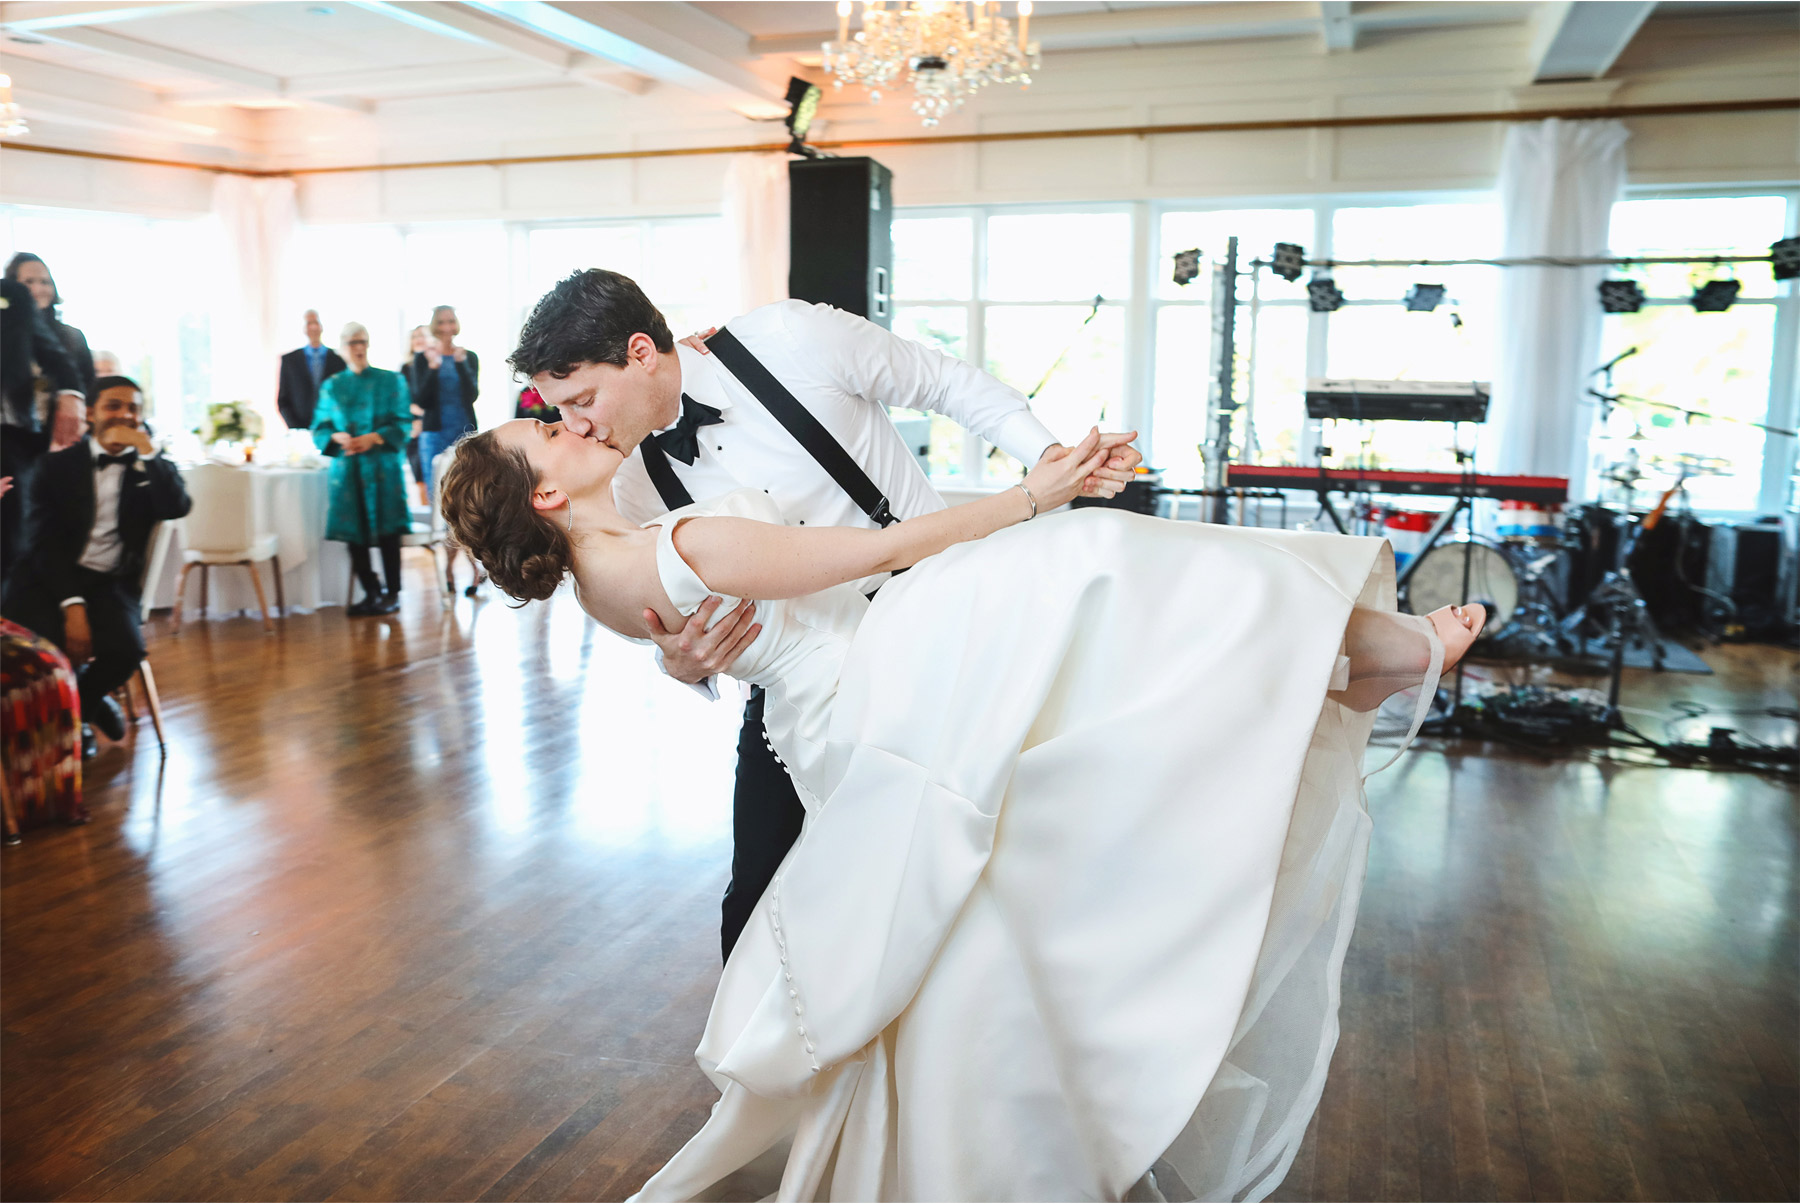 17-Minneapolis-Minnesota-Wedding-Andrew-Vick-Photography-Minikahda-Country-Club-First-Dance-Bride-Groom-Reception-Ashton-and-Kevin.jpg